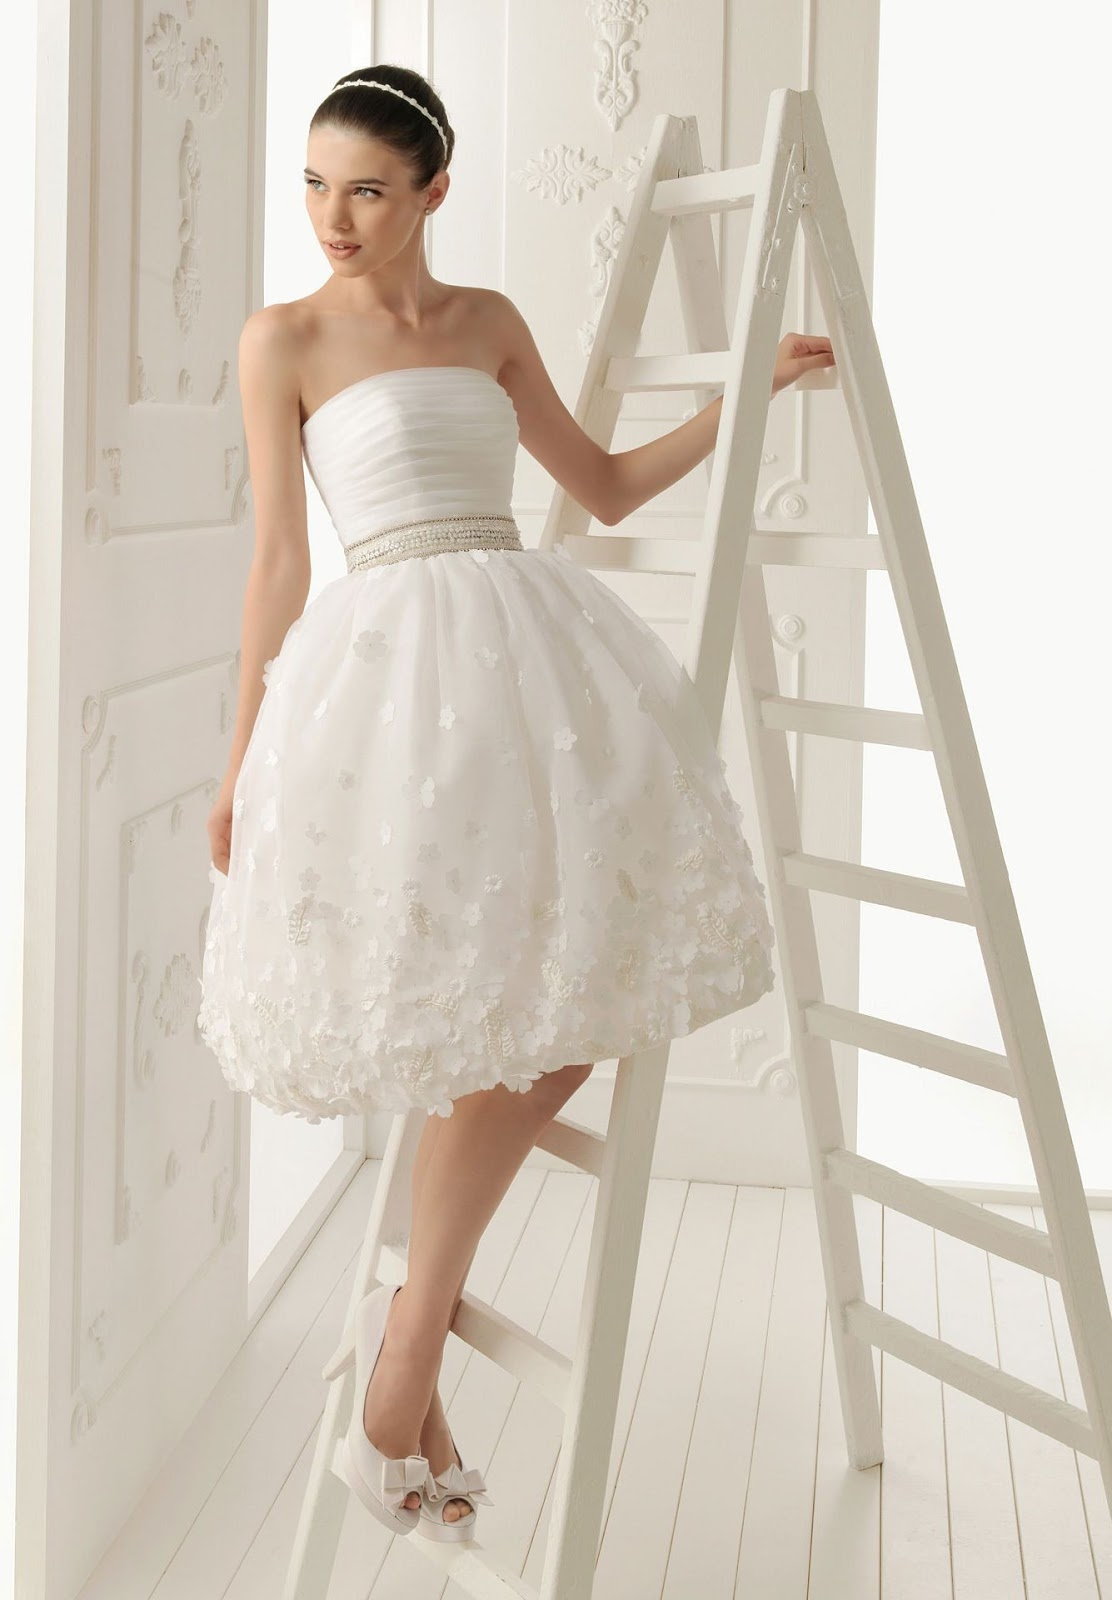 WhiteAzalea Elegant Dresses: Simple Elegant Wedding